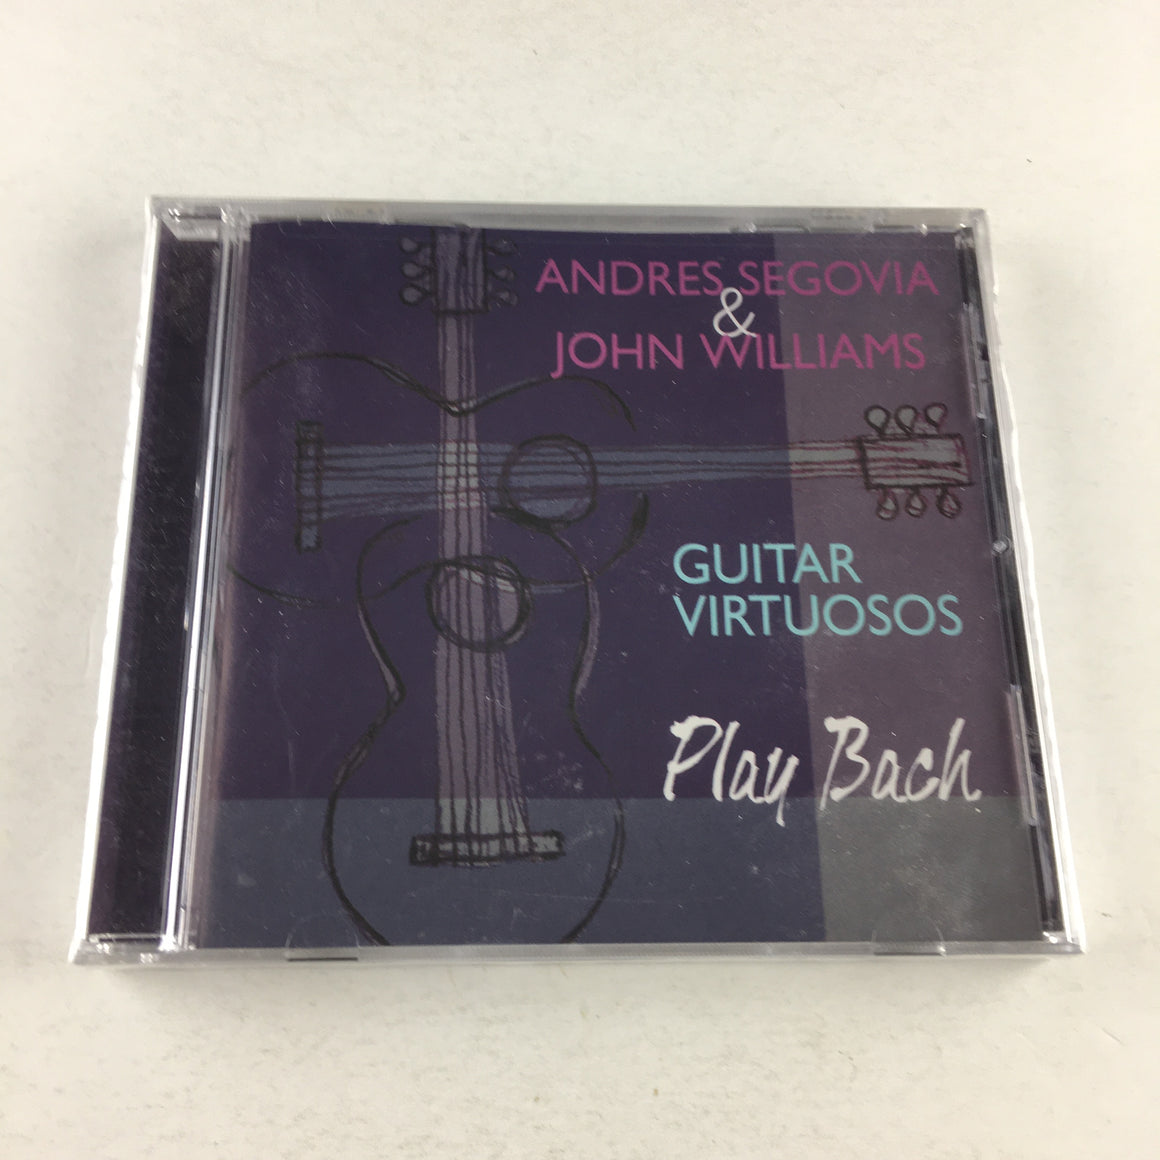 Andres Segovia John Williams Guitar Virtuosos Play Bach M CD Sealed